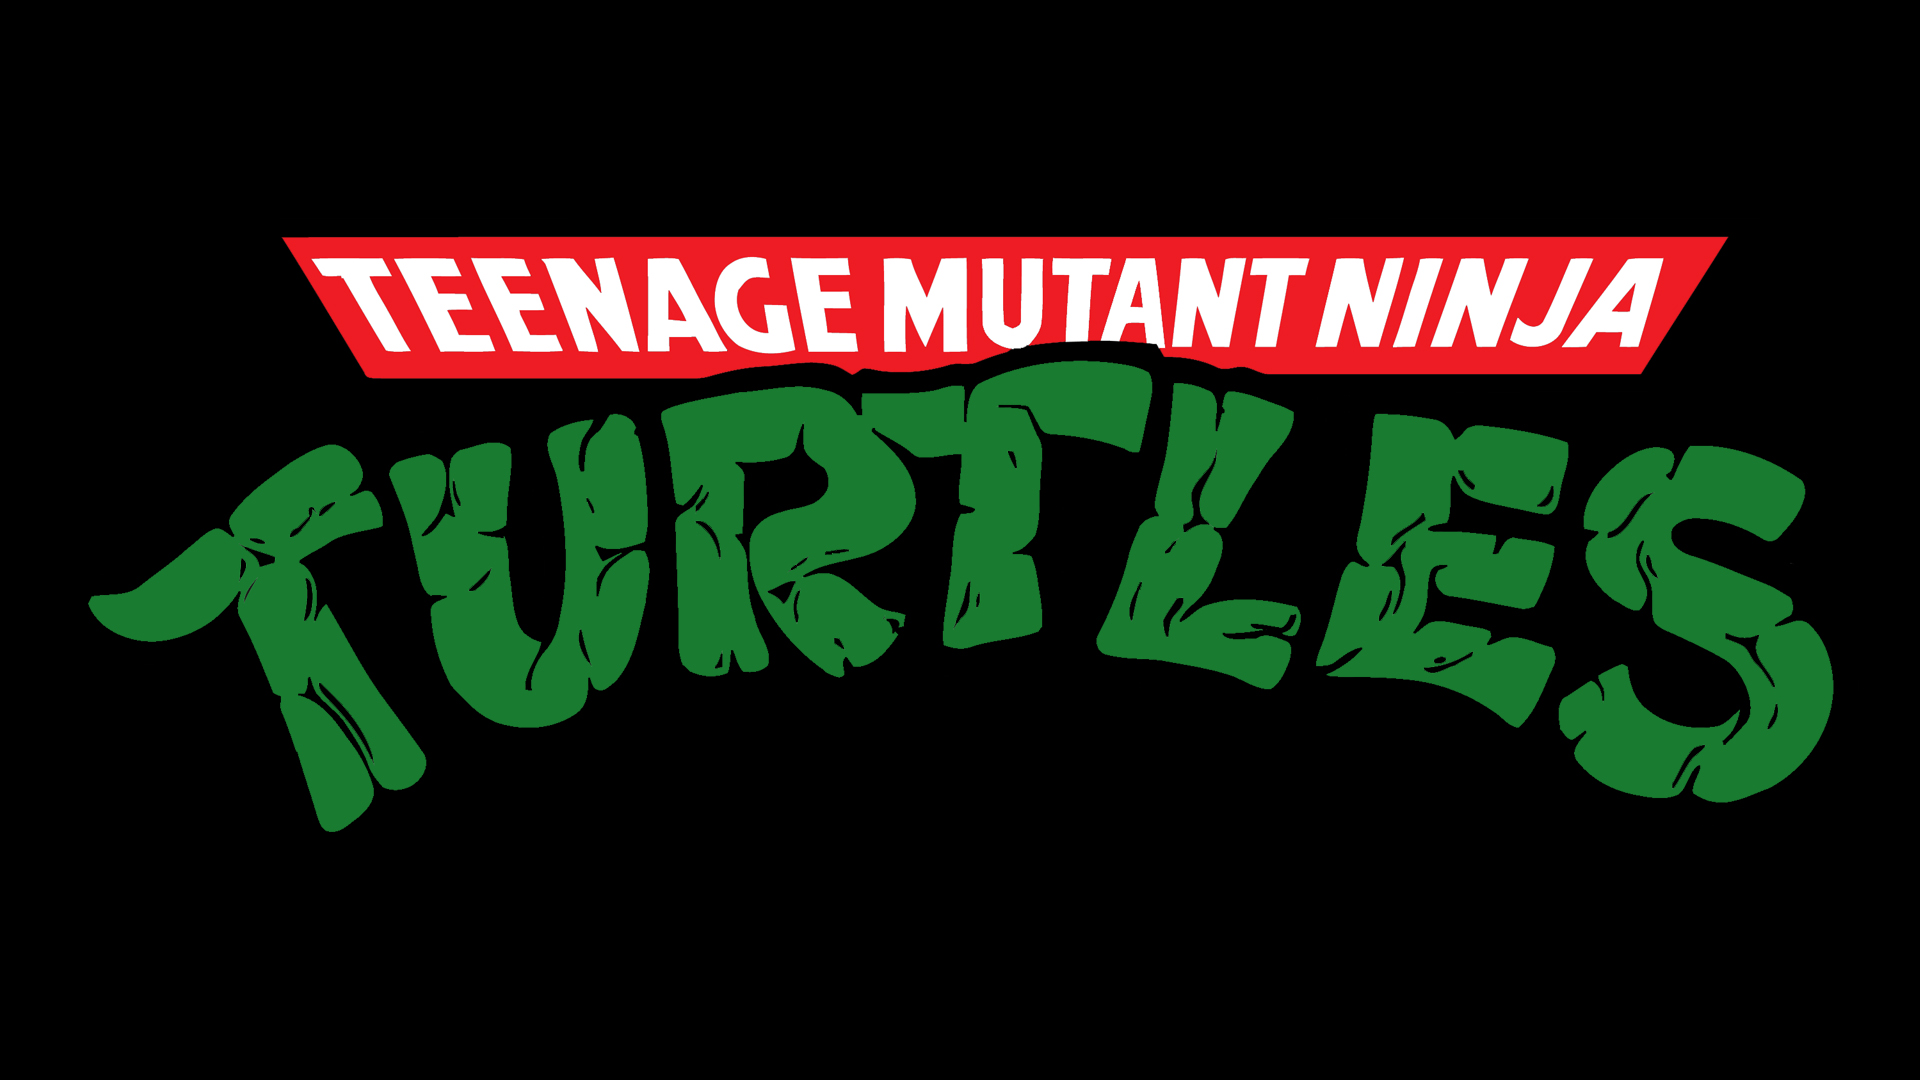 Teenage Mutant Ninja Turtles Logo Wallpaper 40699 1920x1080 px